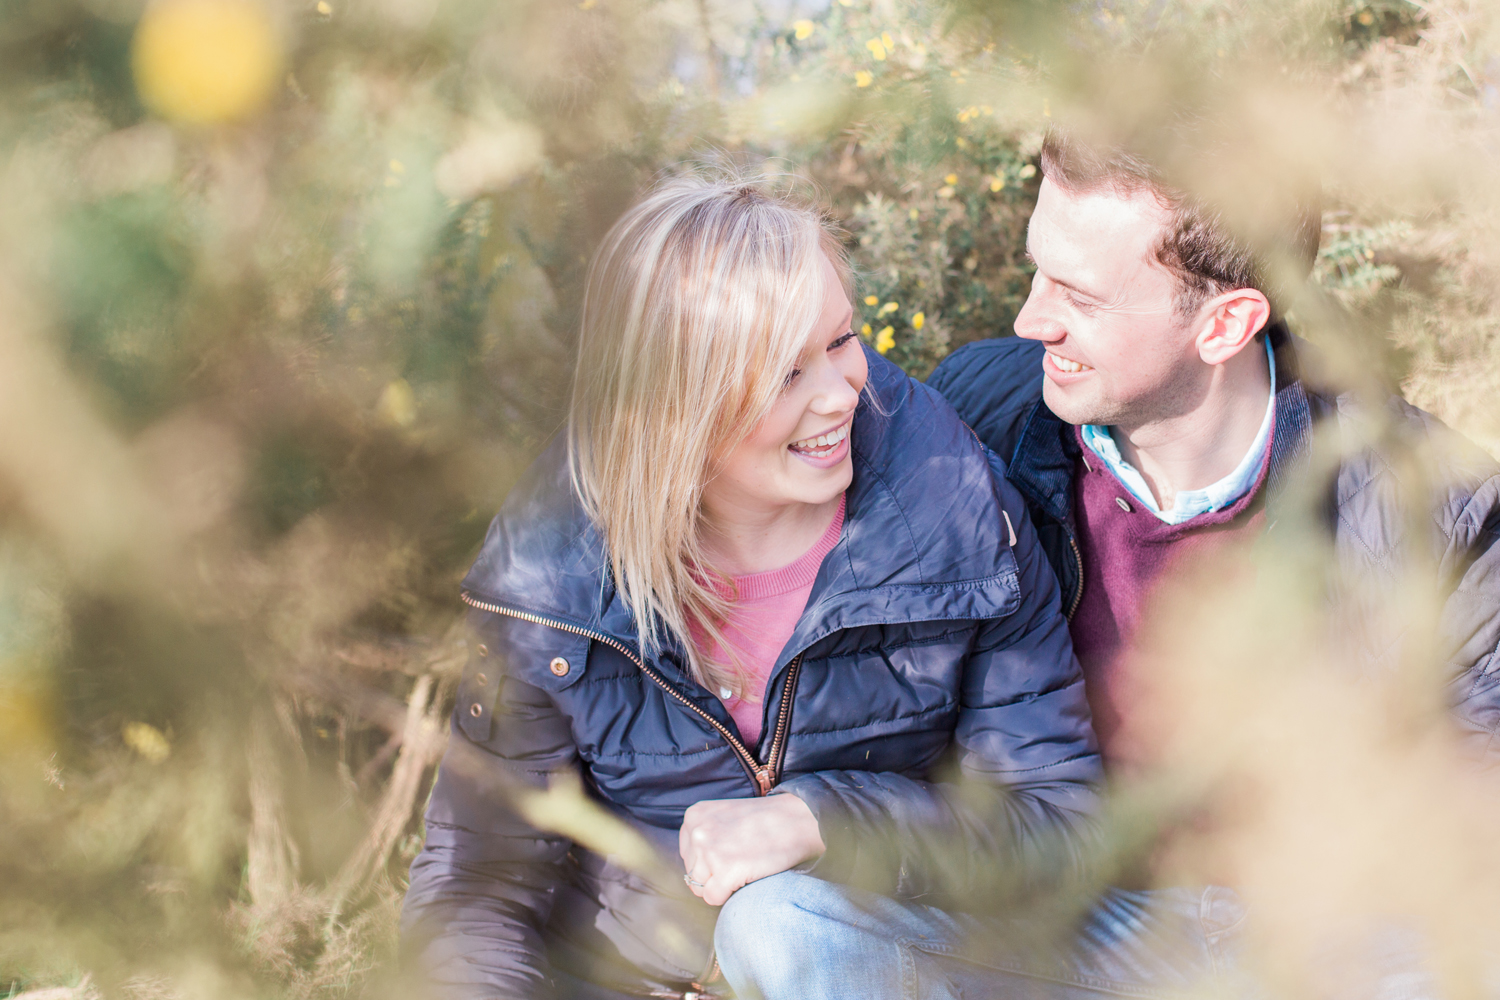 Sophie Evans Photography, Warwickshire Wedding Photography, Farm Engagement Shoot, Emma & Gus_002.jpg